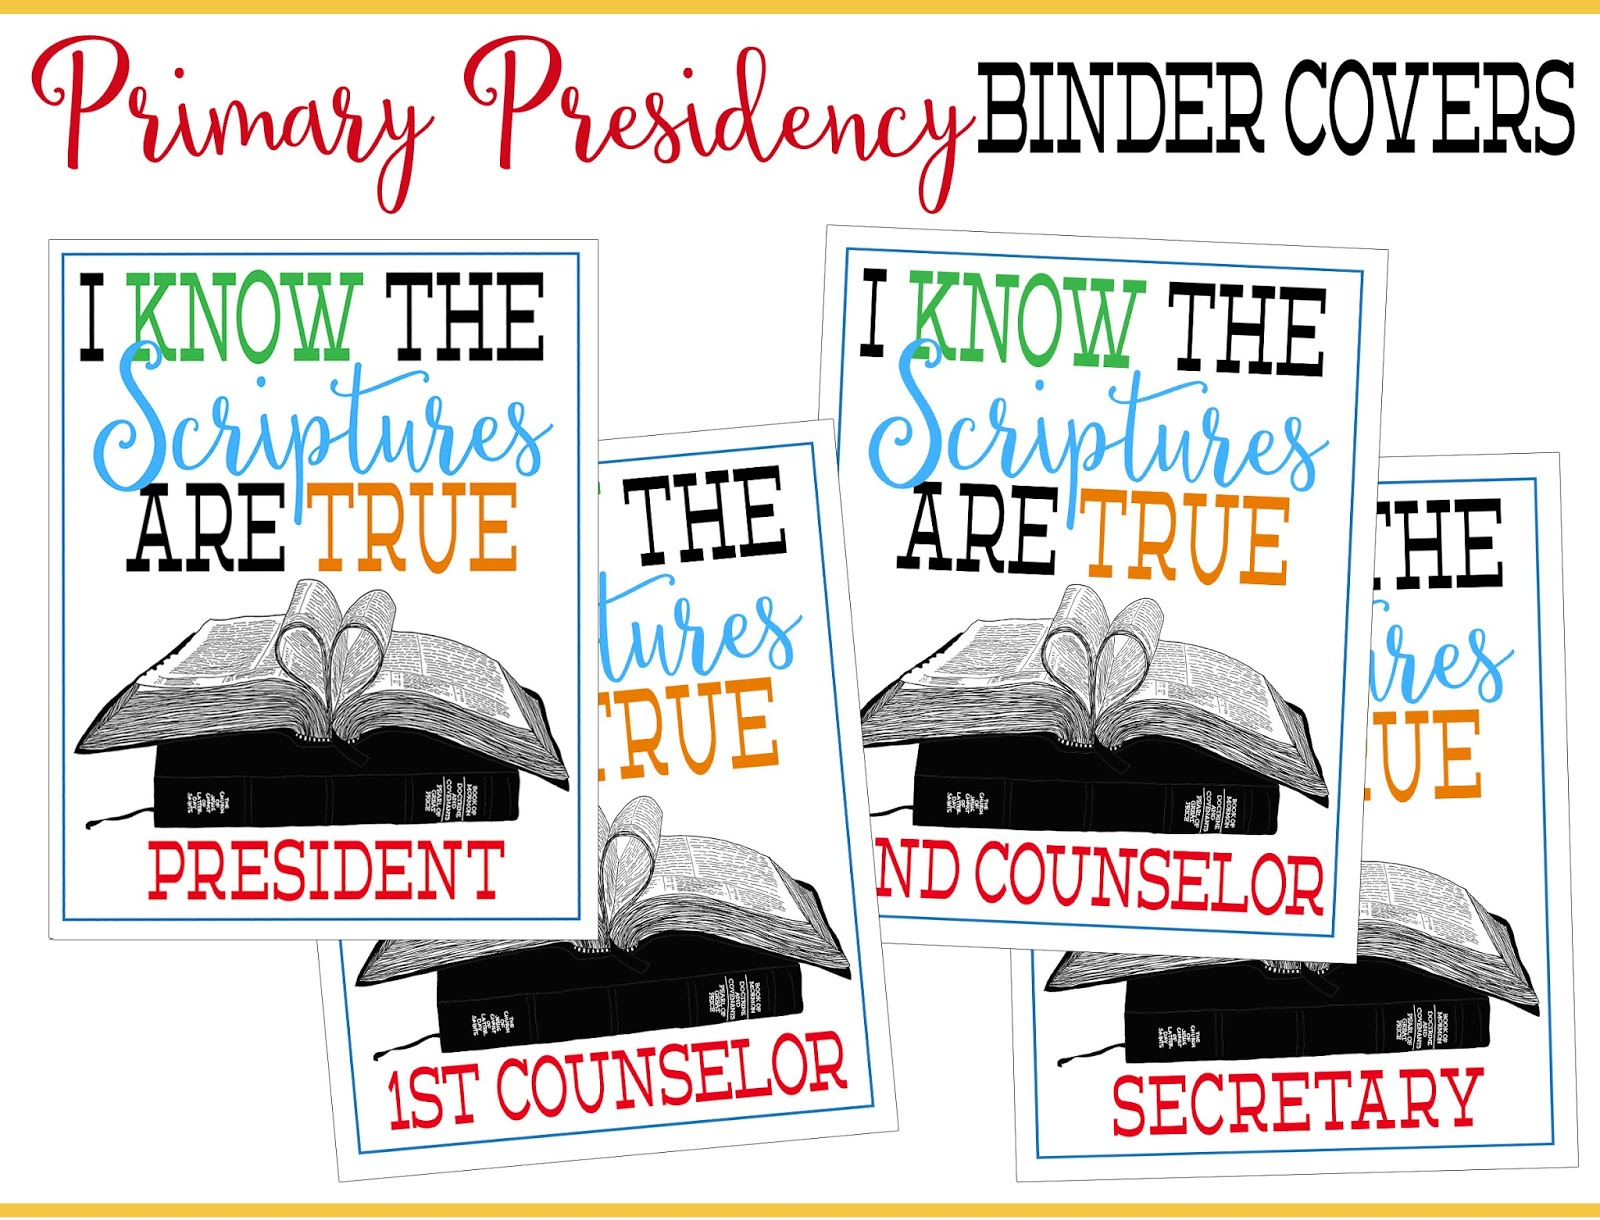 Search Results for: 2016 Primary Binder Covers Printable